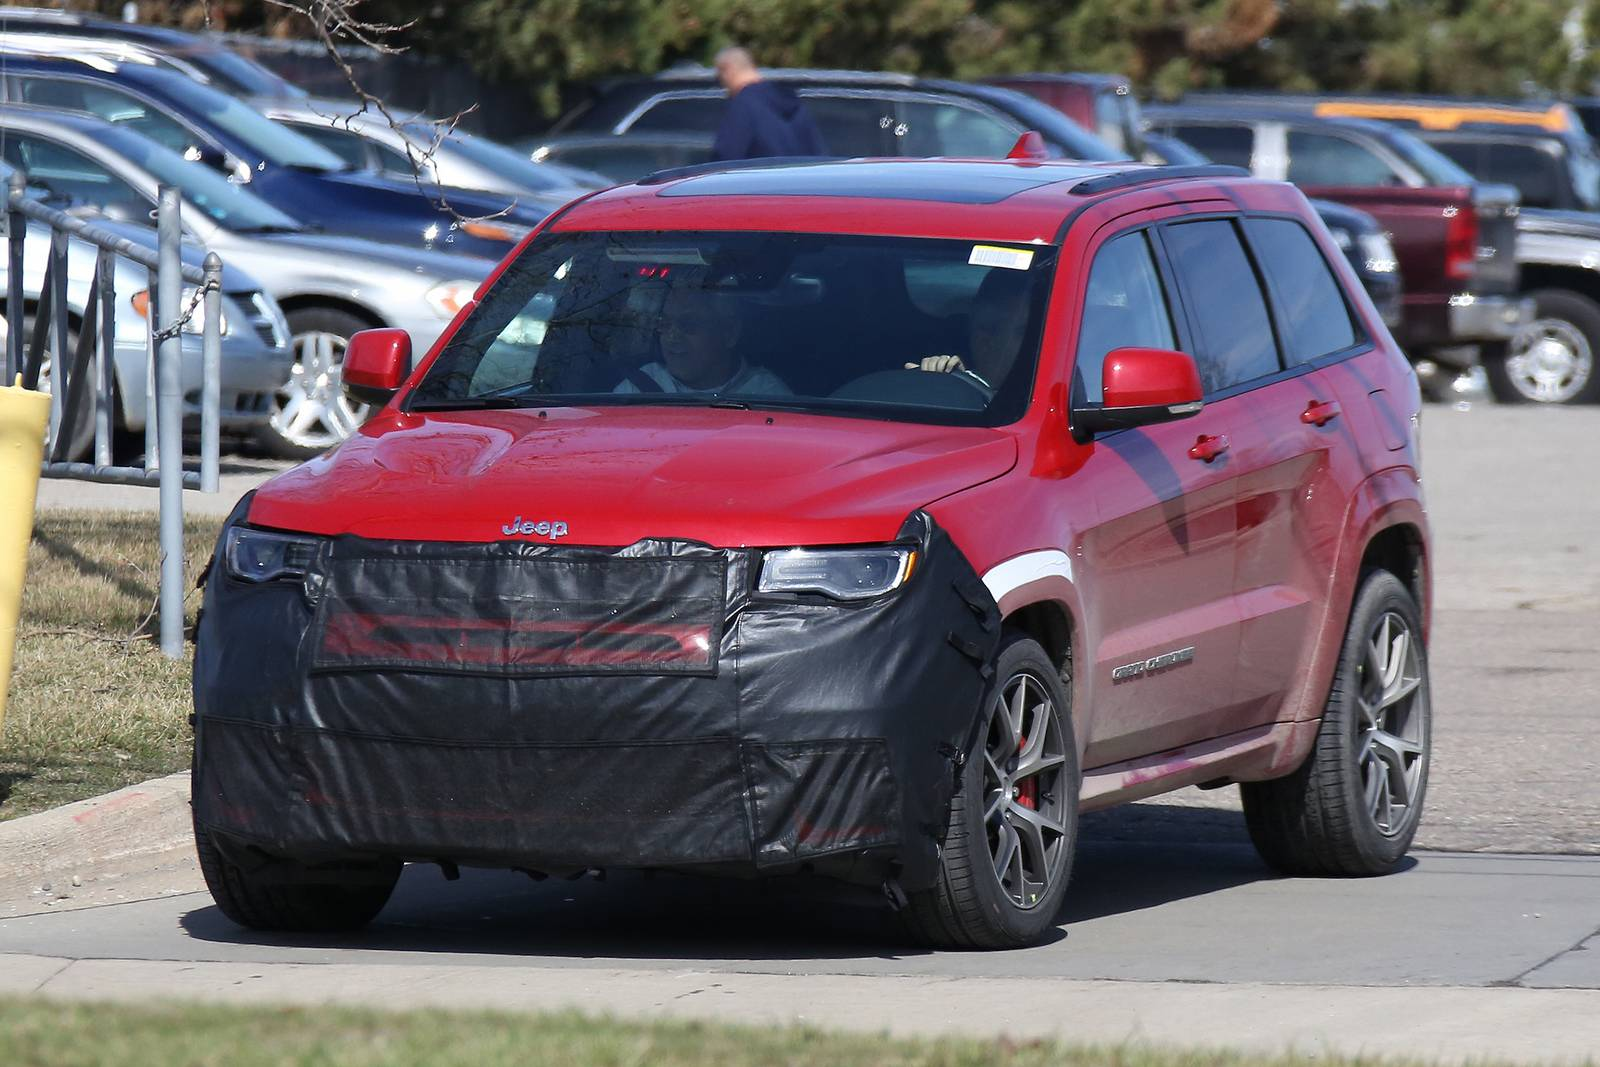 2018 jeep grand cherokee trackhawk first spy shots gtspirit. Black Bedroom Furniture Sets. Home Design Ideas